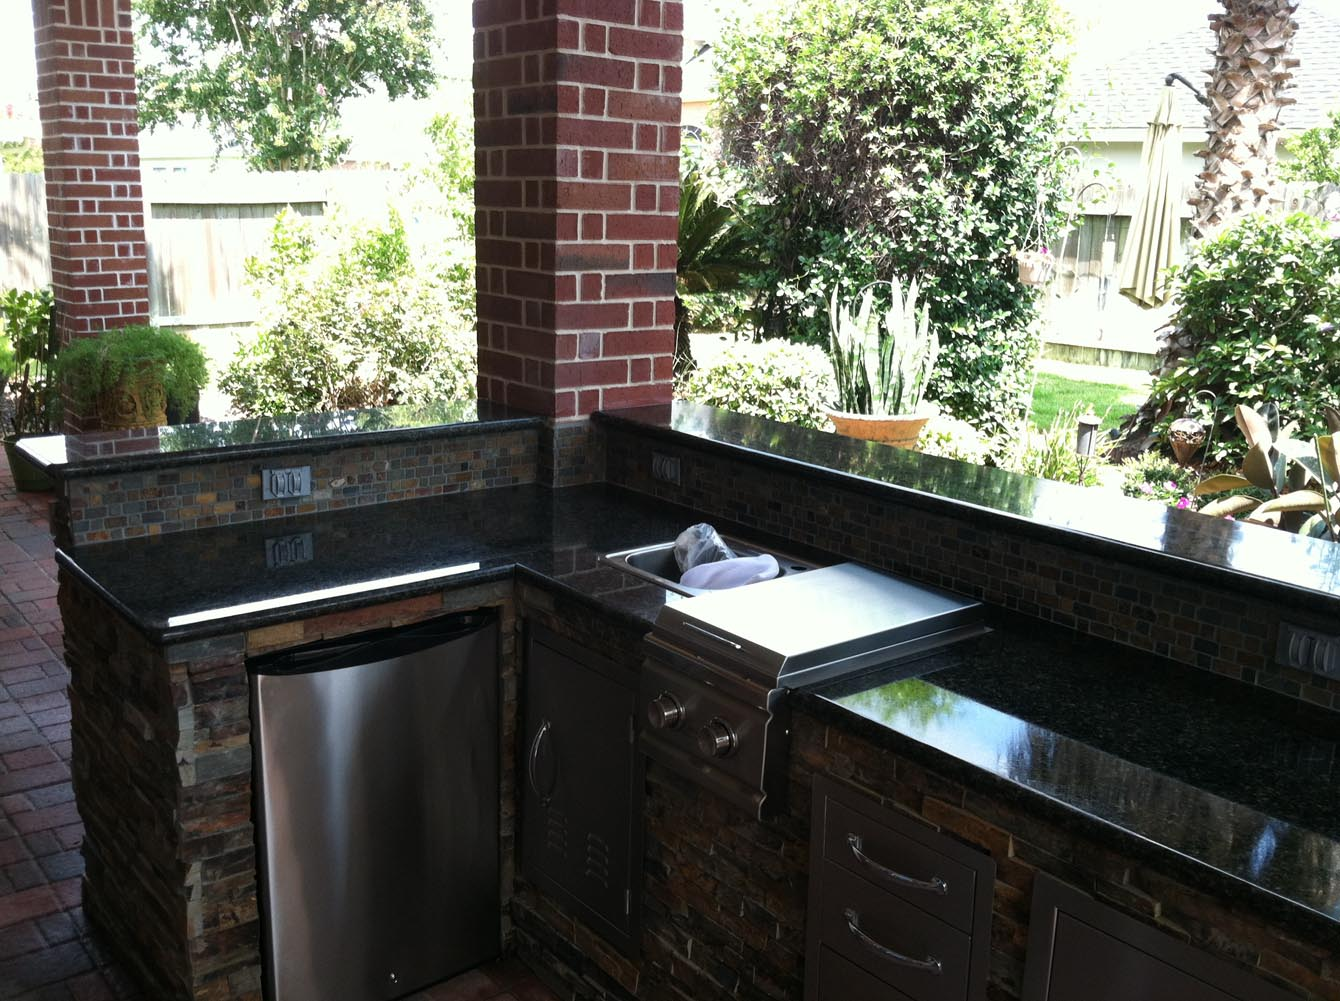 Patio cover and outdoor kitchen in houston hhi patio covers for Outdoor kitchen covered patio